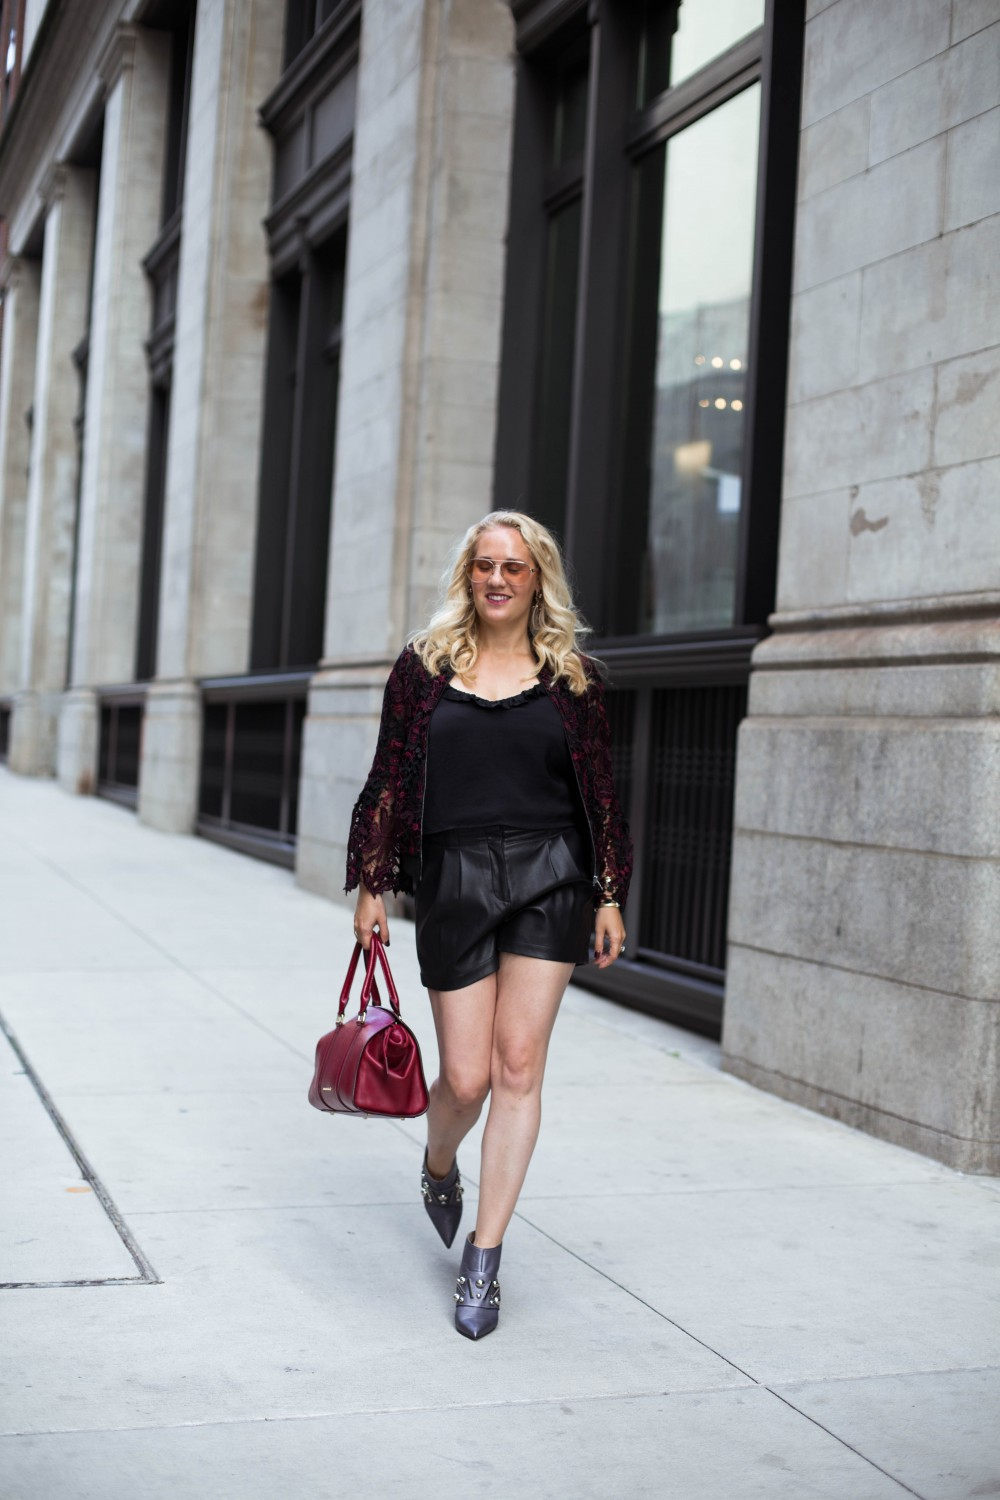 Lace Bomber Jacket-Kobi Halperin for Macy's-NYFW Street Style-NYFW SS18-Outfit Inspiration-Faux Leather Shorts-BCBG-Fall Fashion-Donald Pliner Booties-Geene Boots from Donald J Pliner-Have Need Want 13